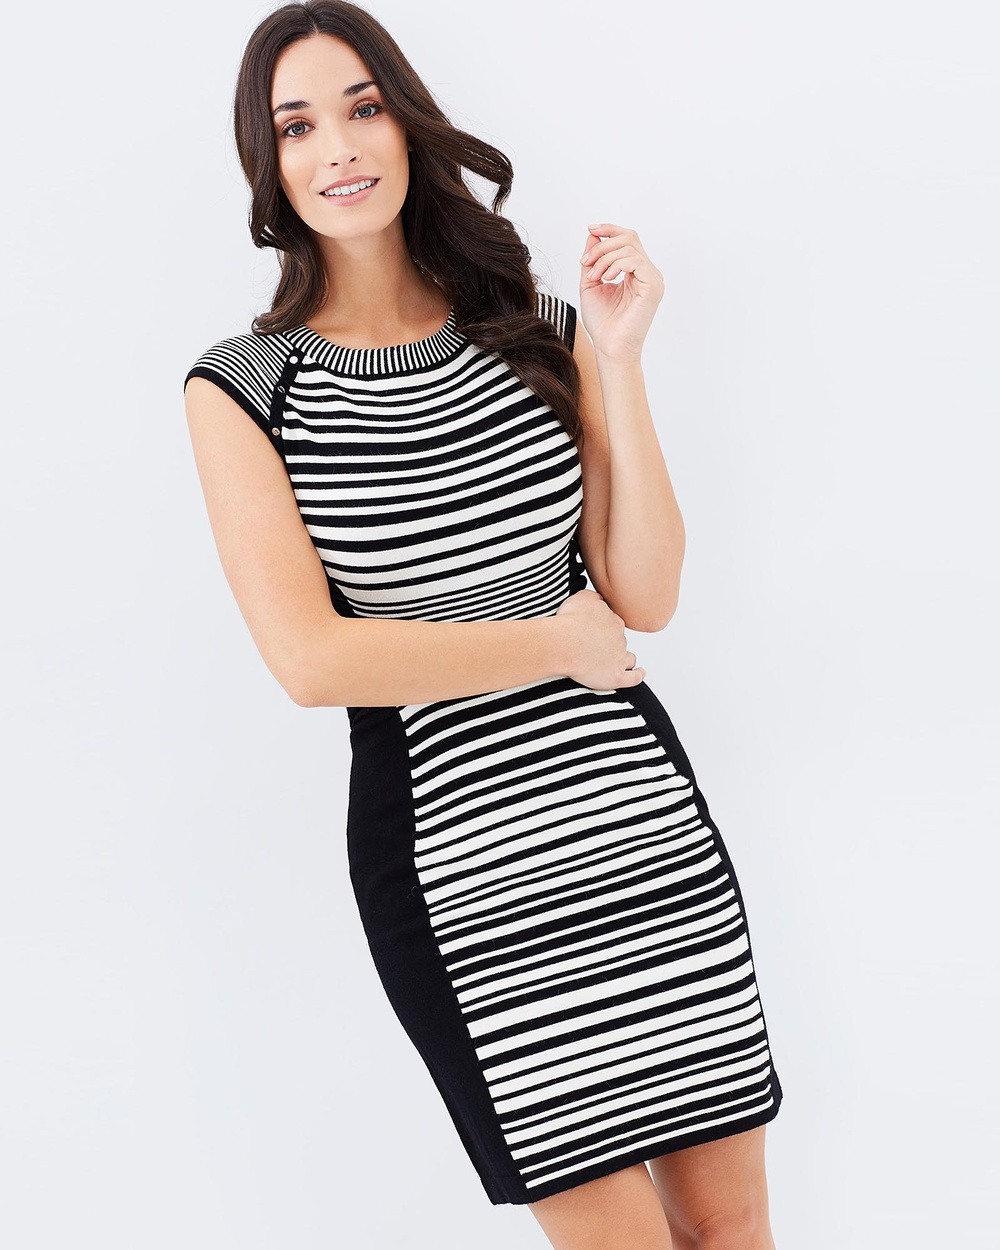 Privilege Knit Dress Bodycon Dresses White & Black Knit Dress